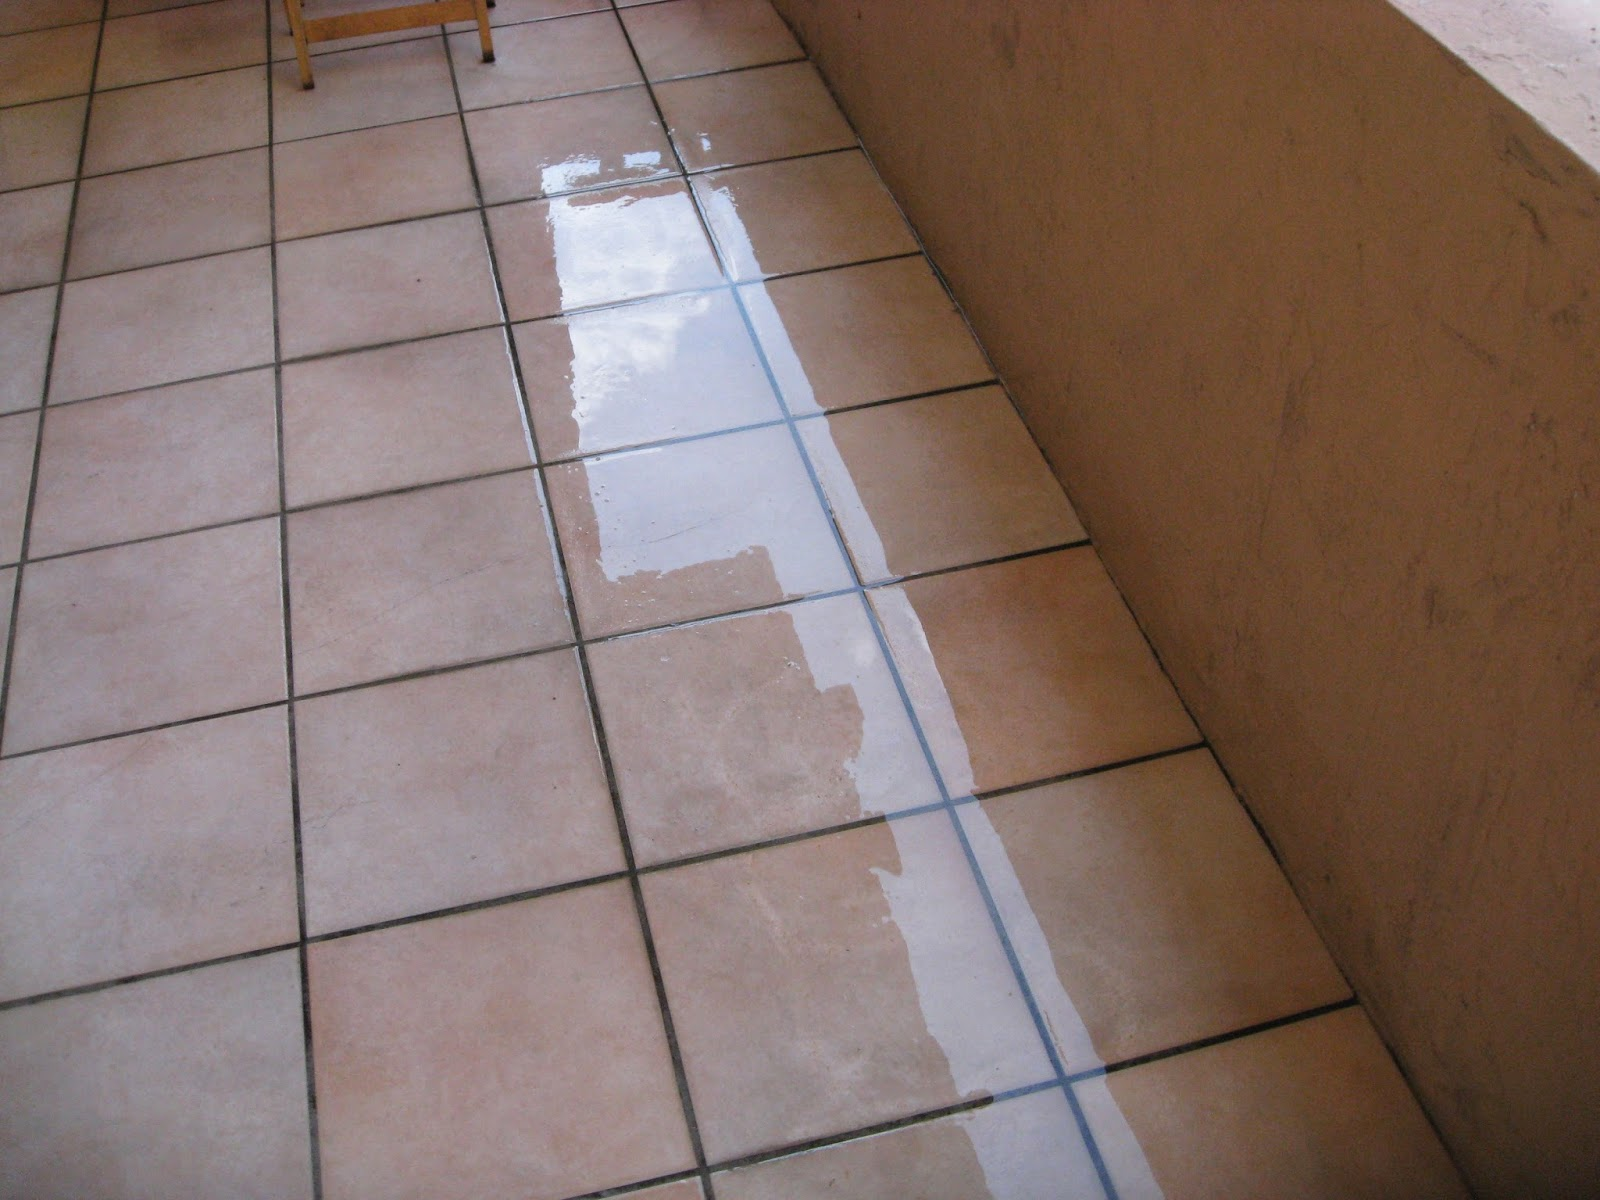 Remove all stains how to remove rust stains from floor how to remove rust stains from floor dailygadgetfo Choice Image